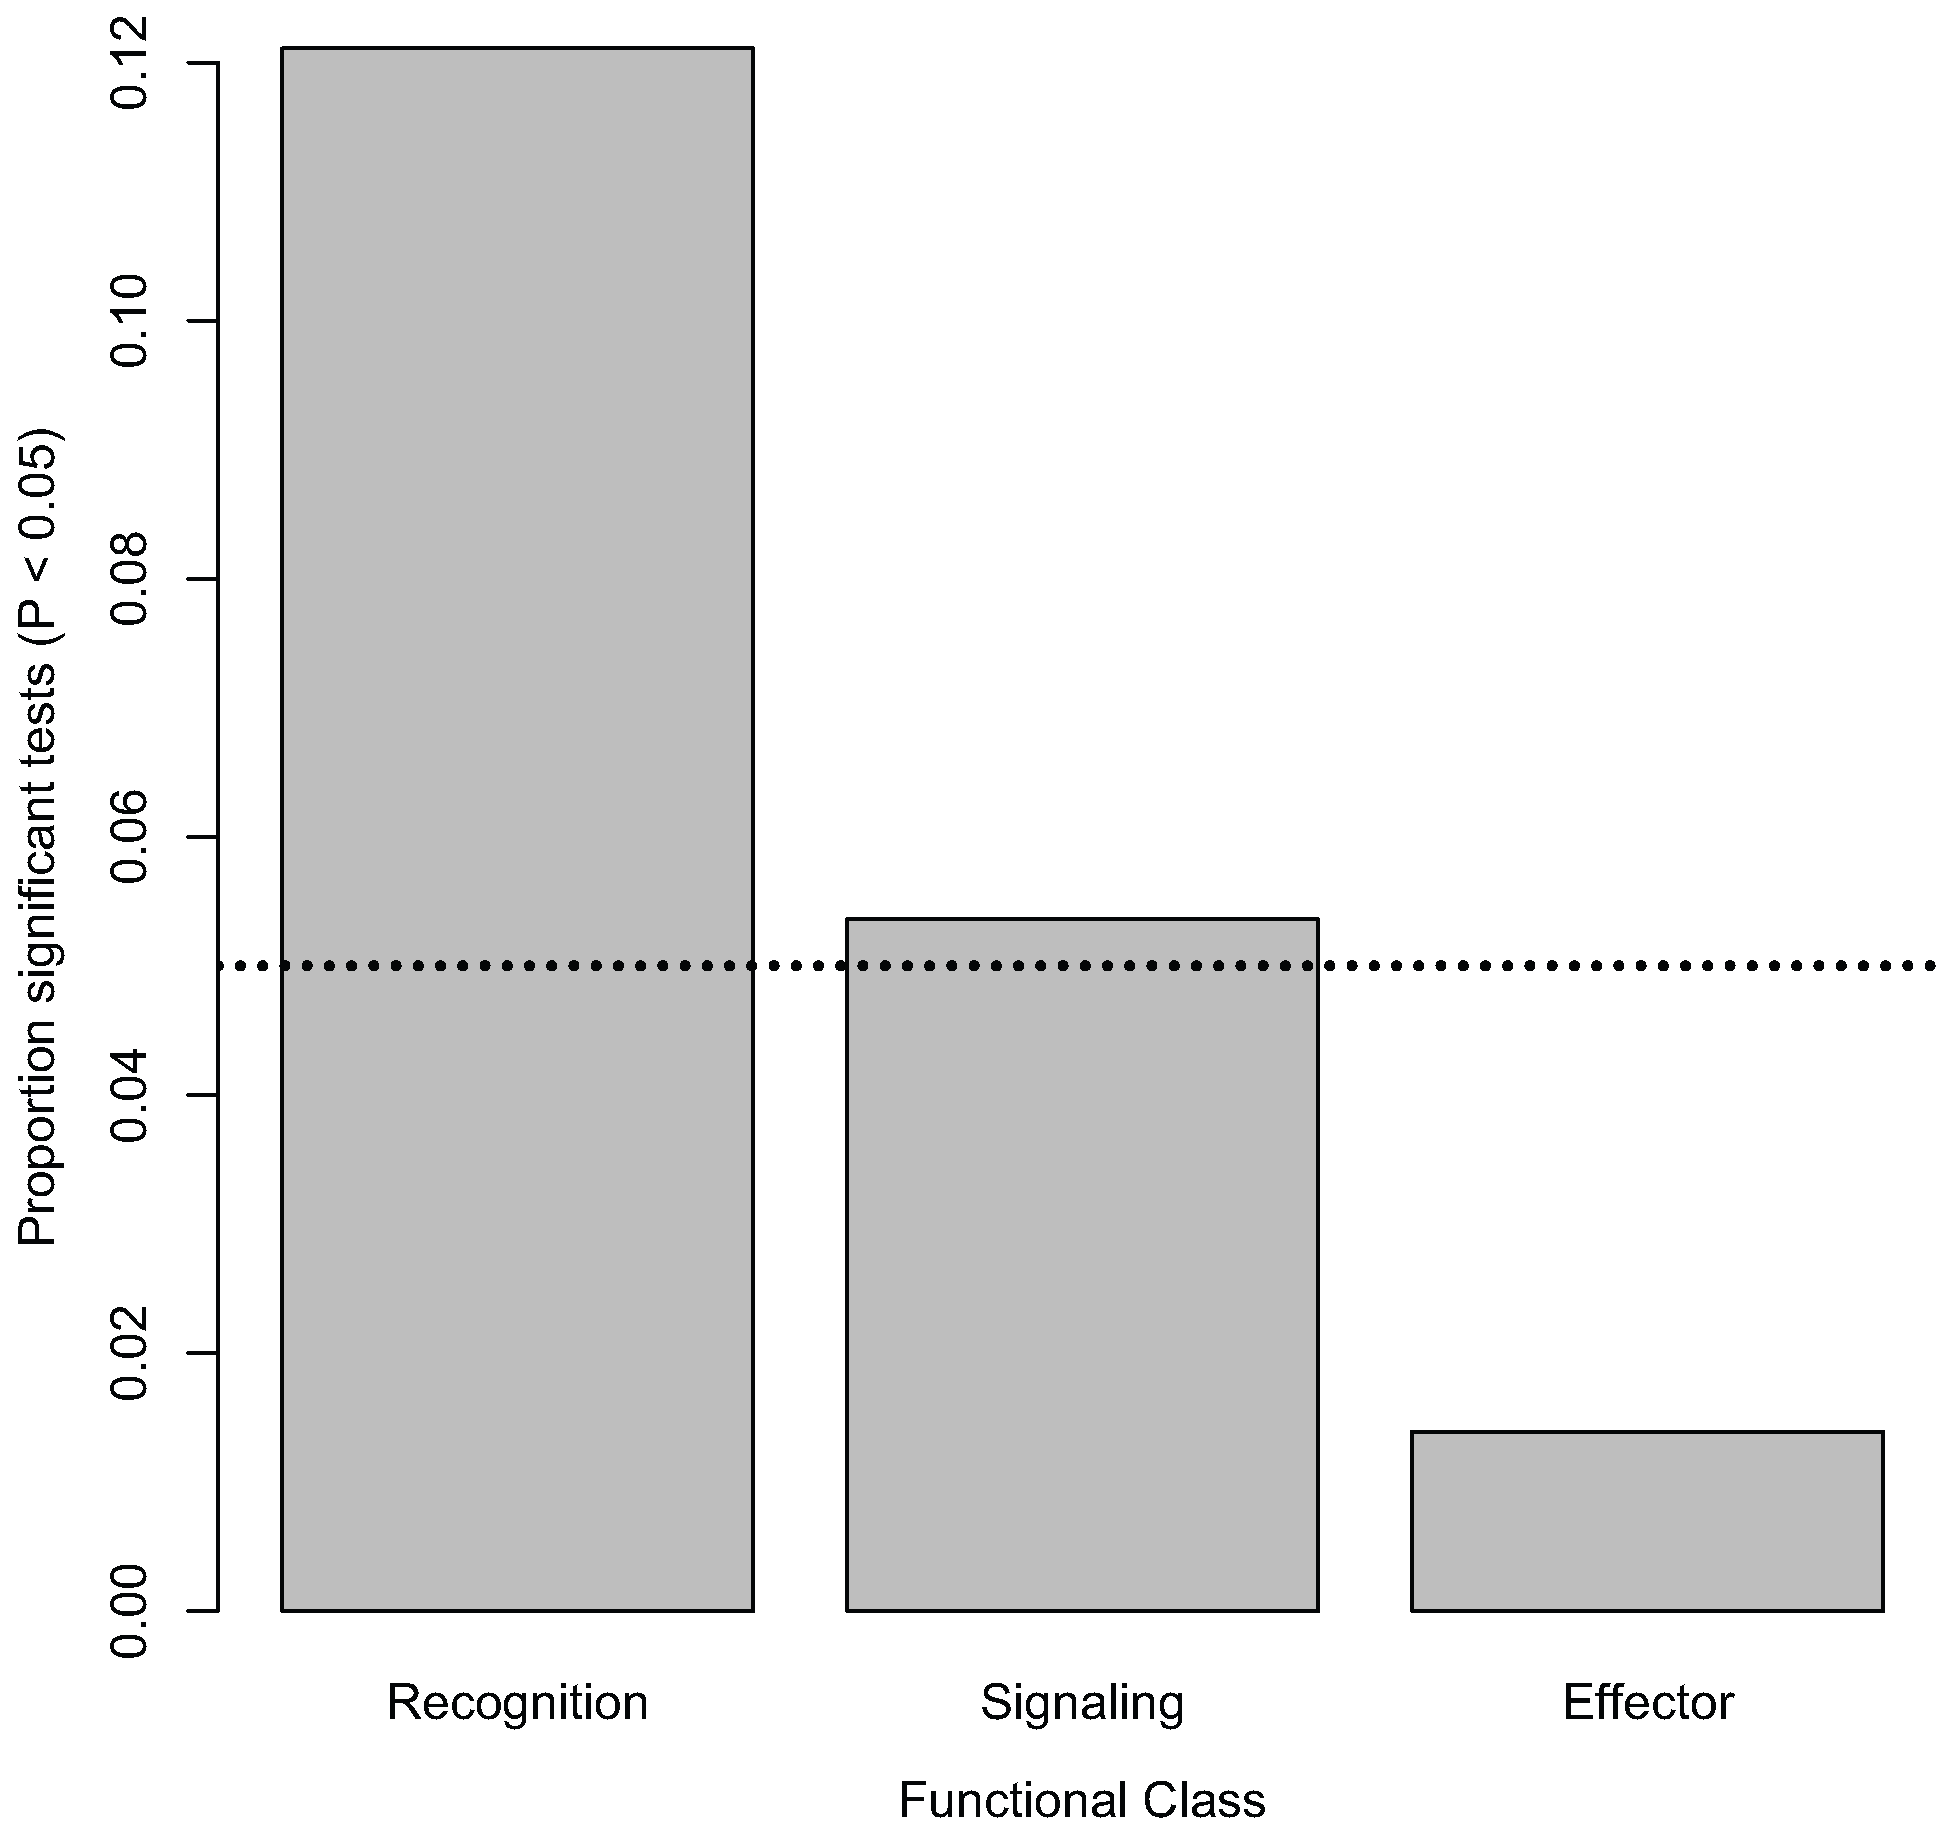 Distribution of significant associations among functional classes.